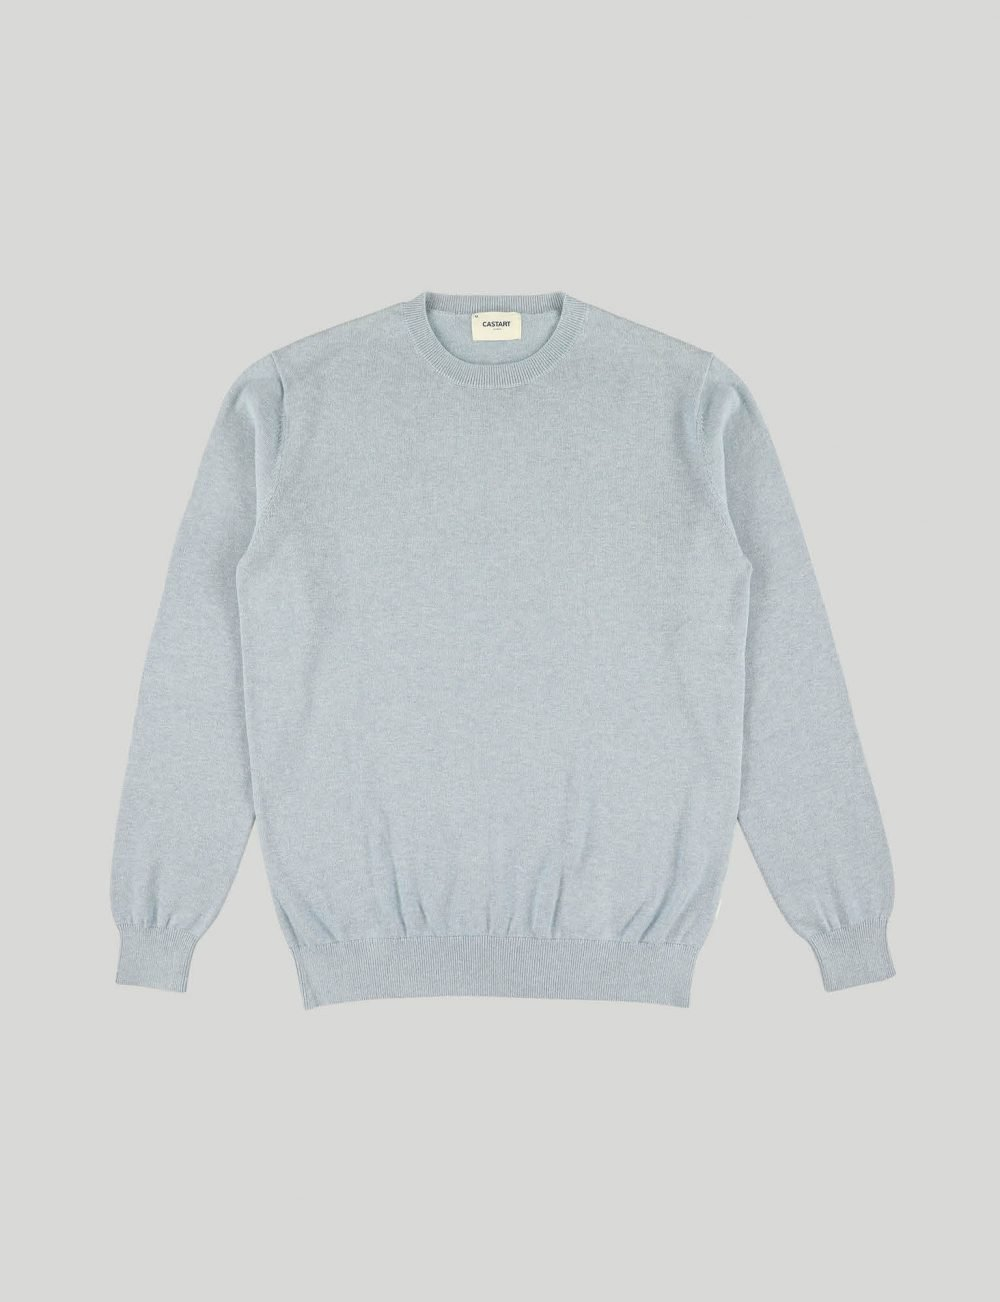 Castart - Shrubs knitwear - Light Blue